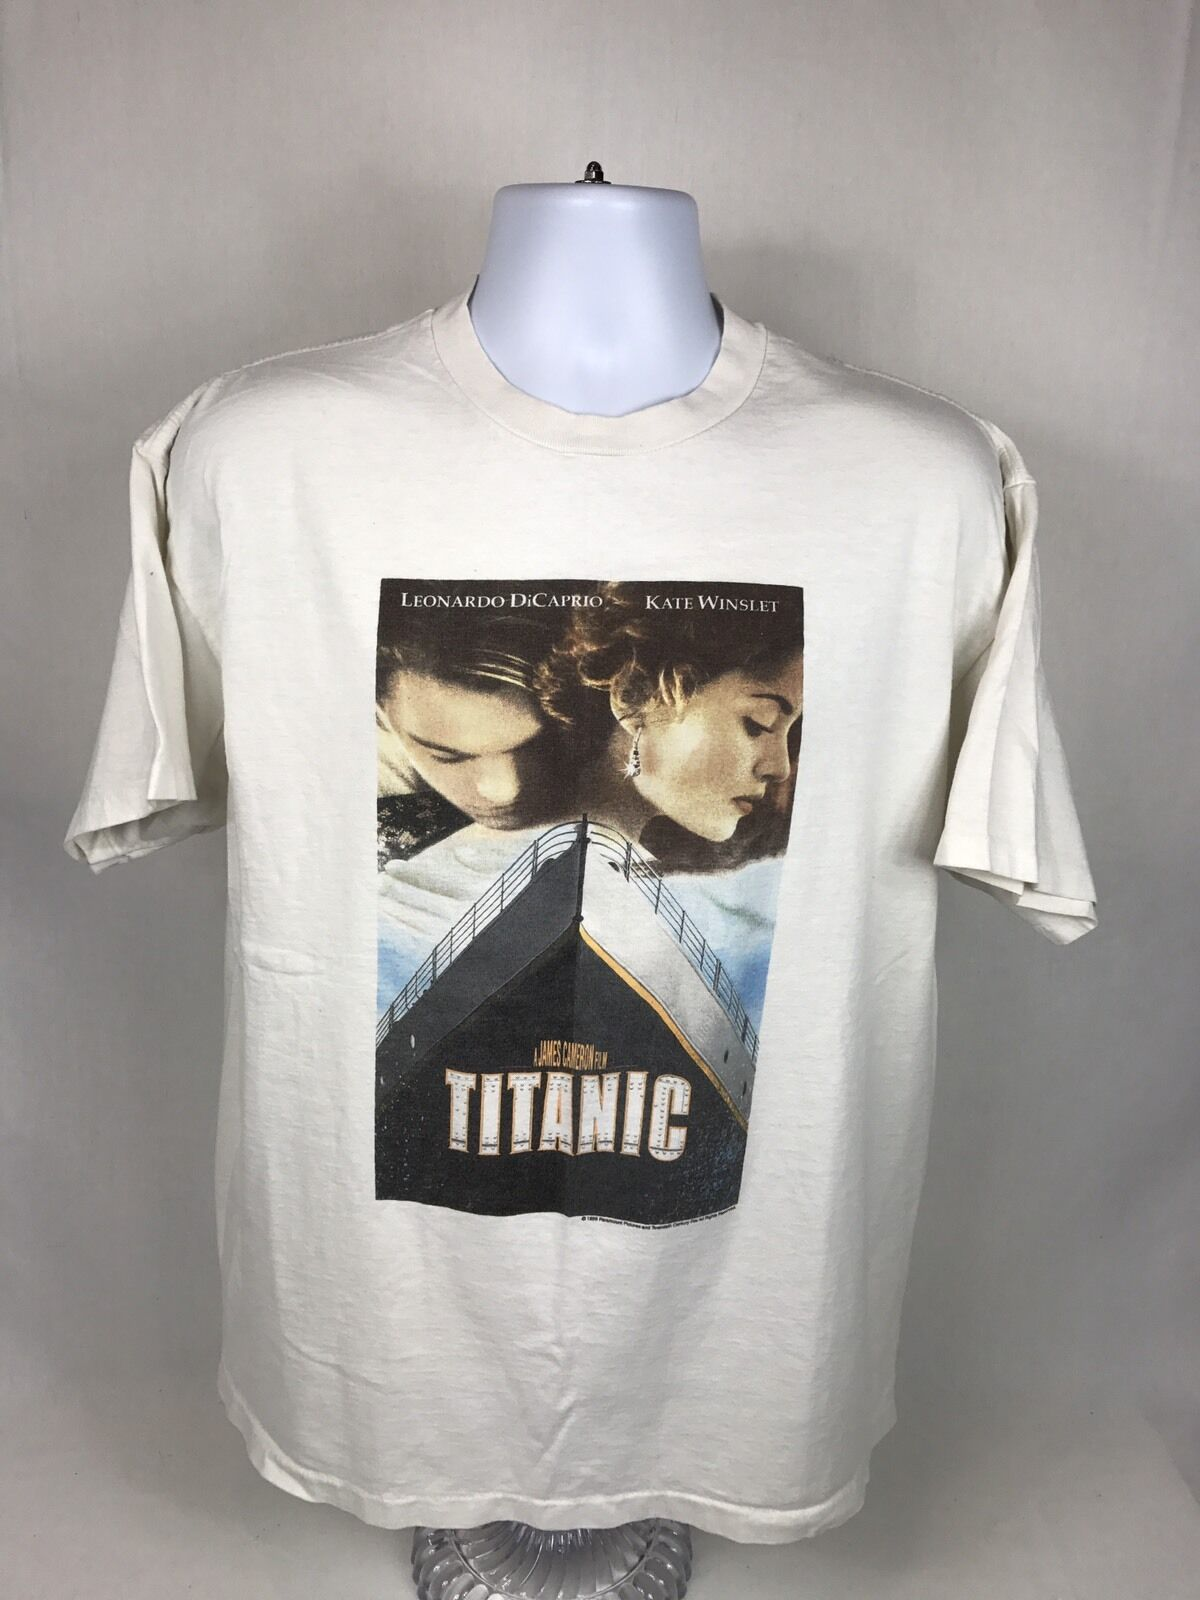 RARE VTG 1998 Titanic The Movie Leonardo DiCaprio Short Sleeve T-Shirt Größe XL